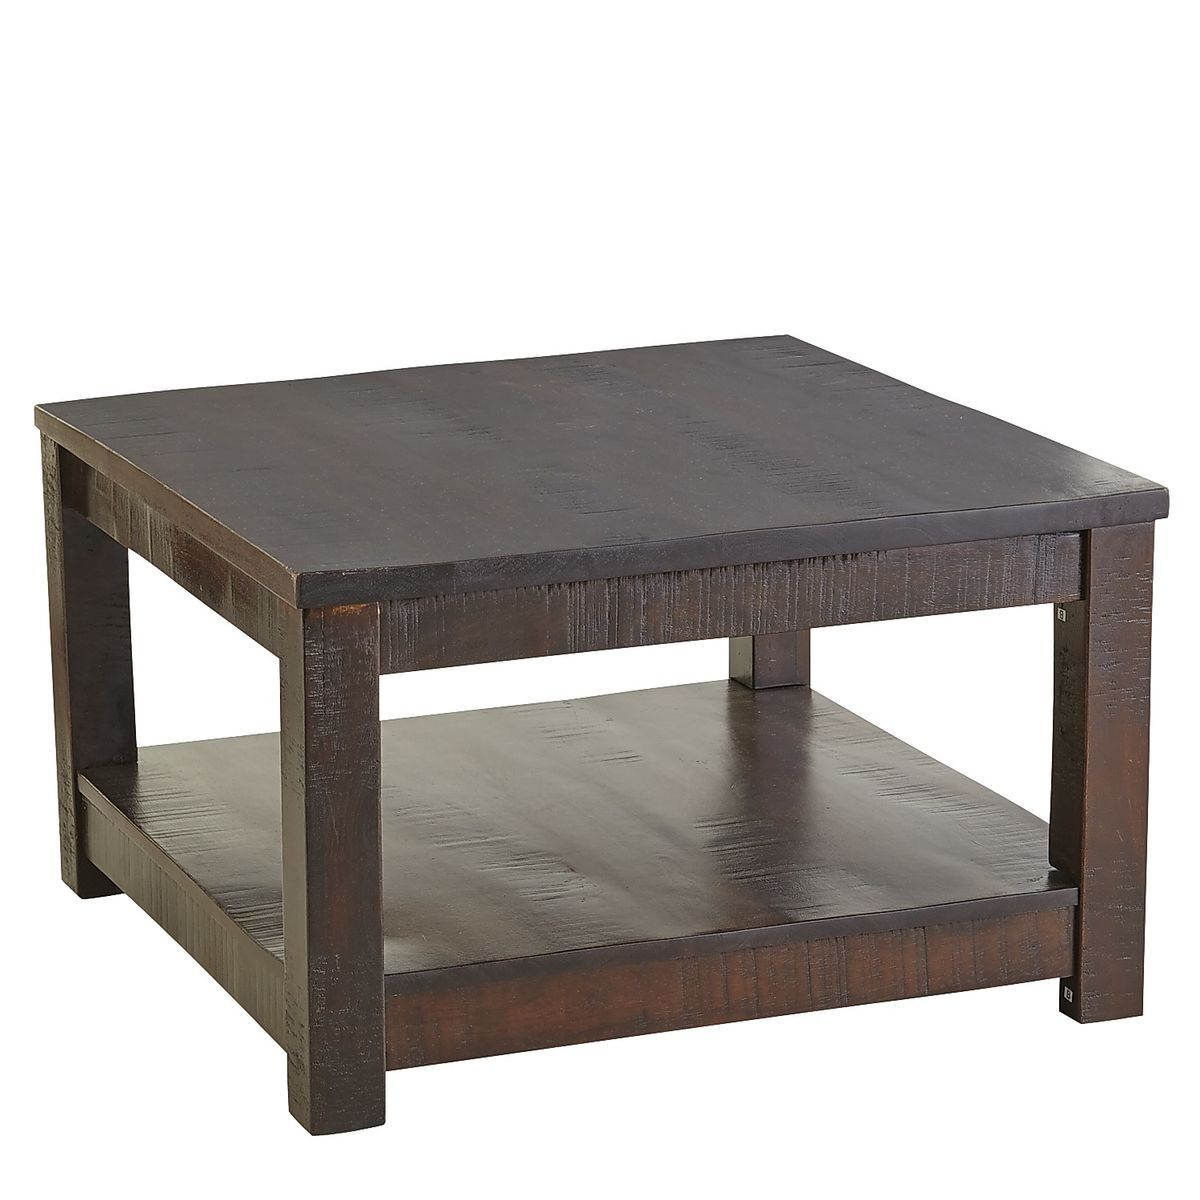 Parsons Tobacco Brown Square Coffee Table Hardwood Table Decorating Coffee Tables Table